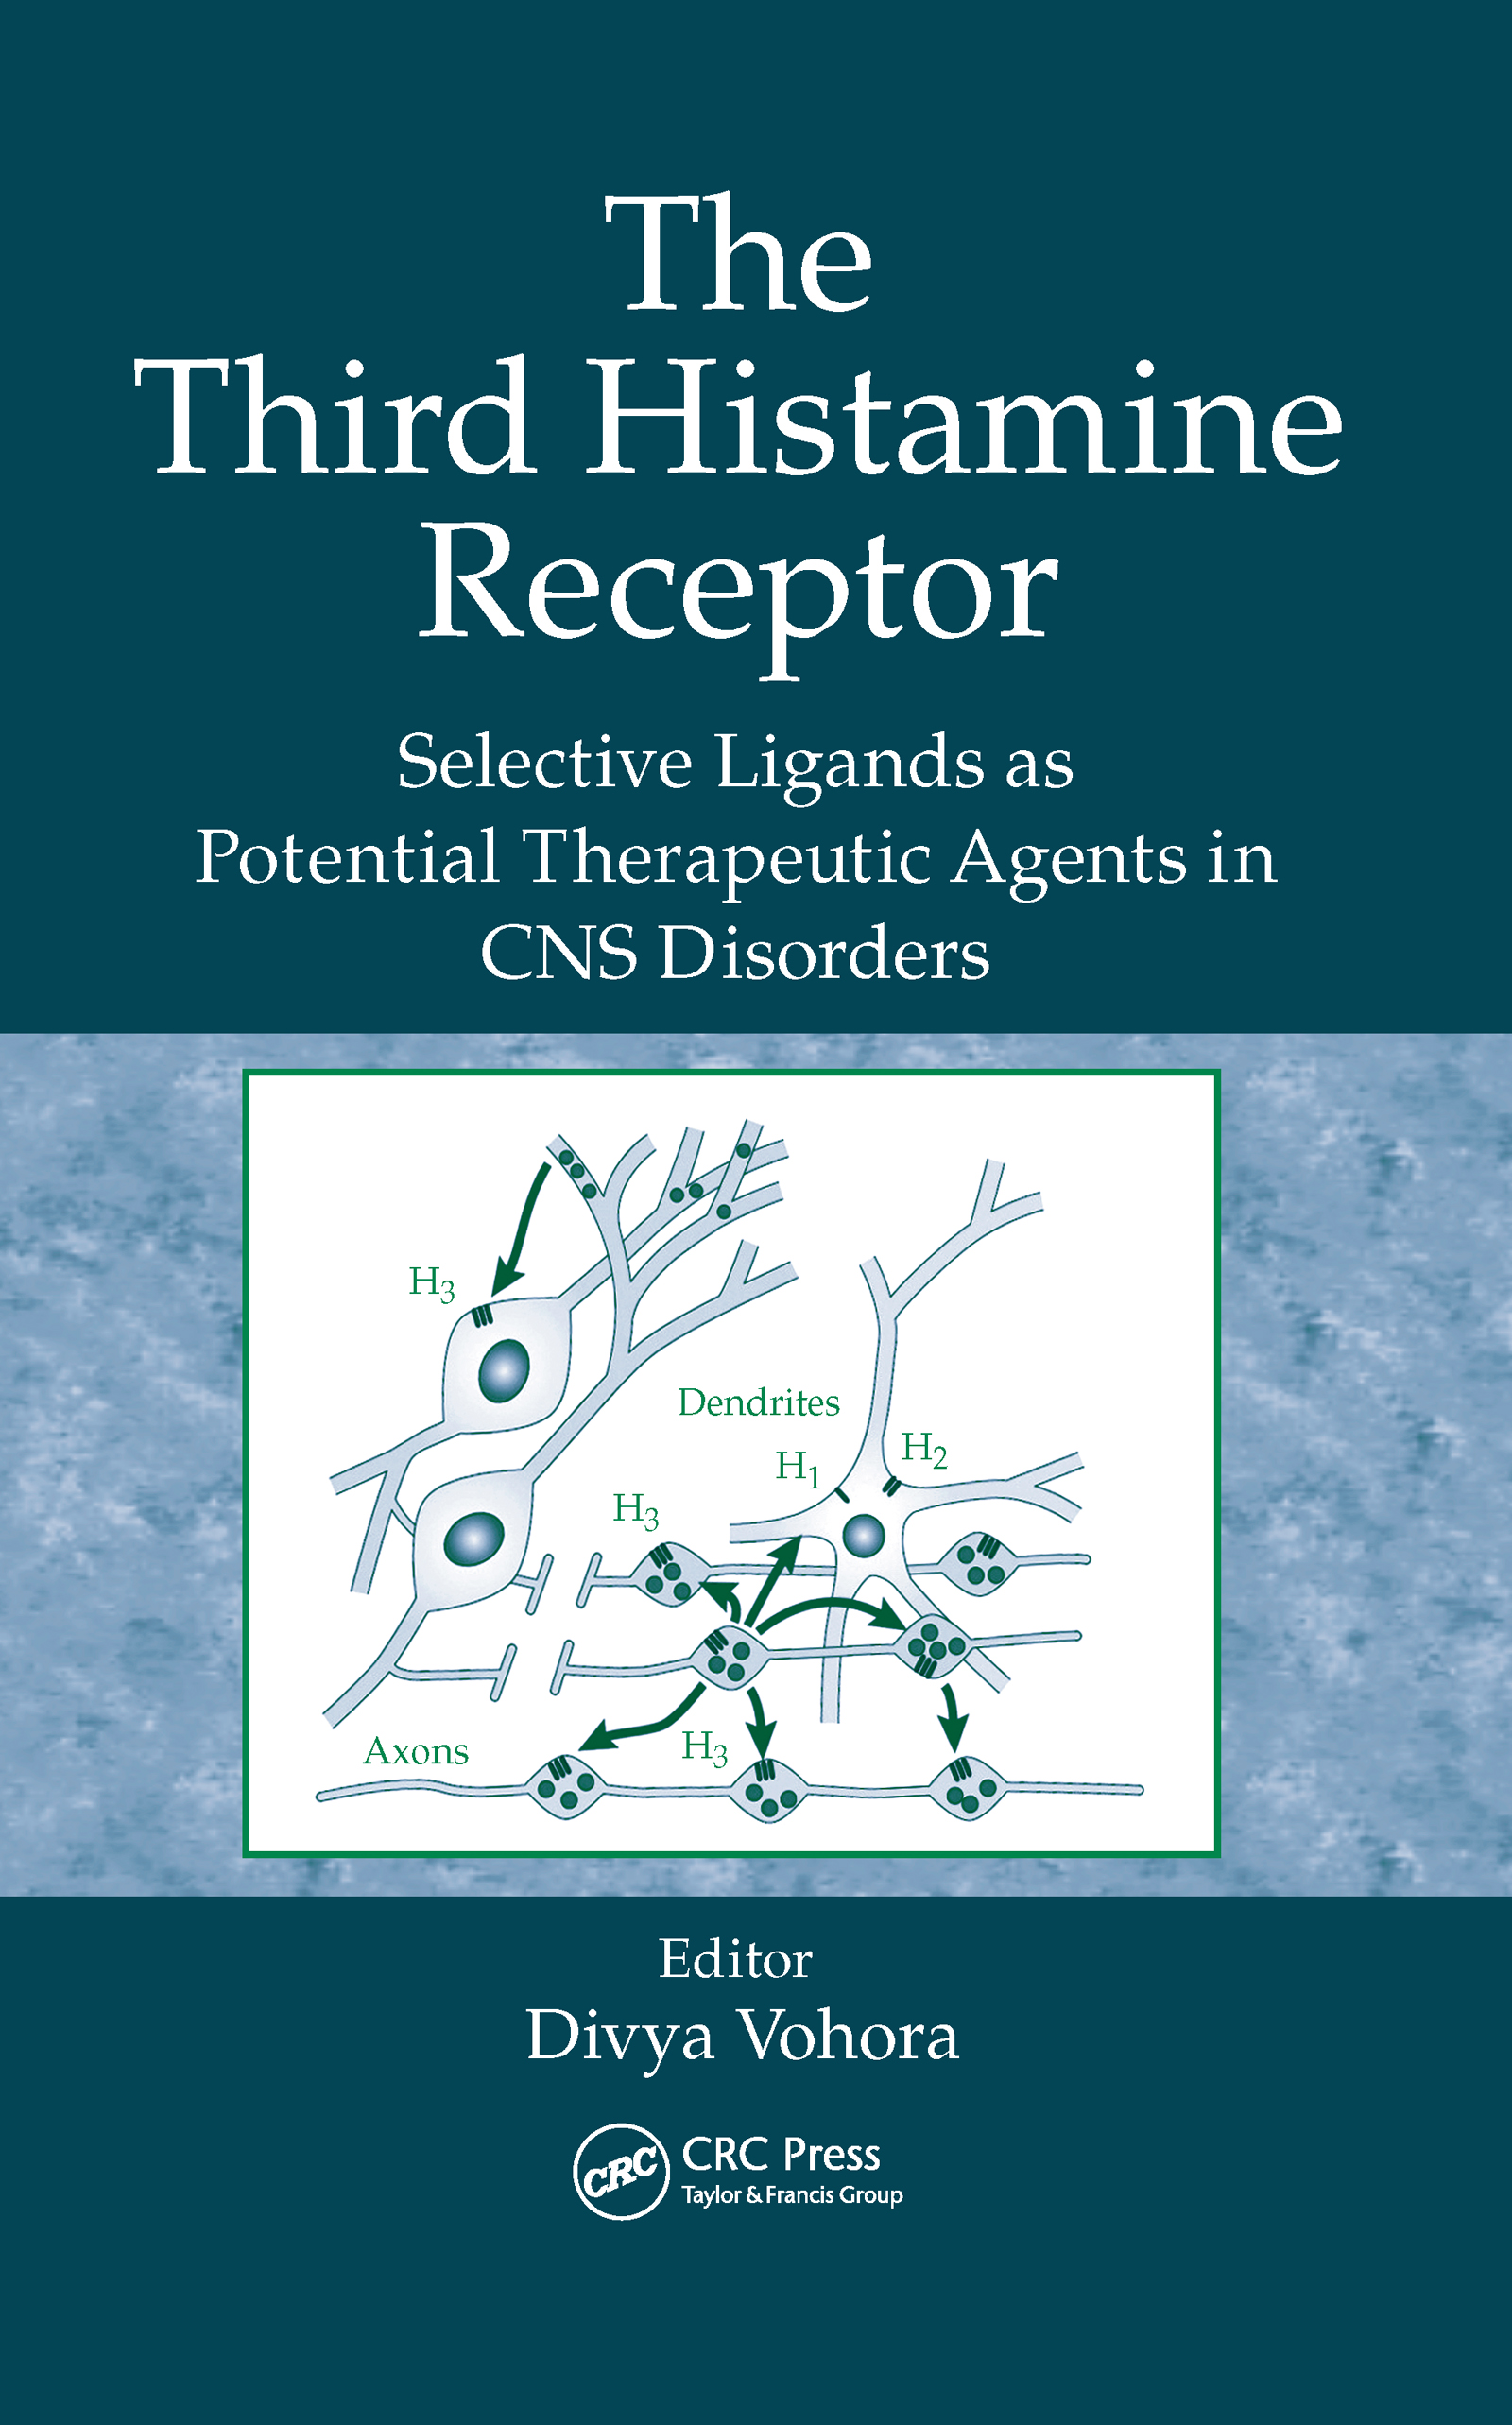 The Third Histamine Receptor: Selective Ligands as Potential Therapeutic Agents in CNS Disorders book cover